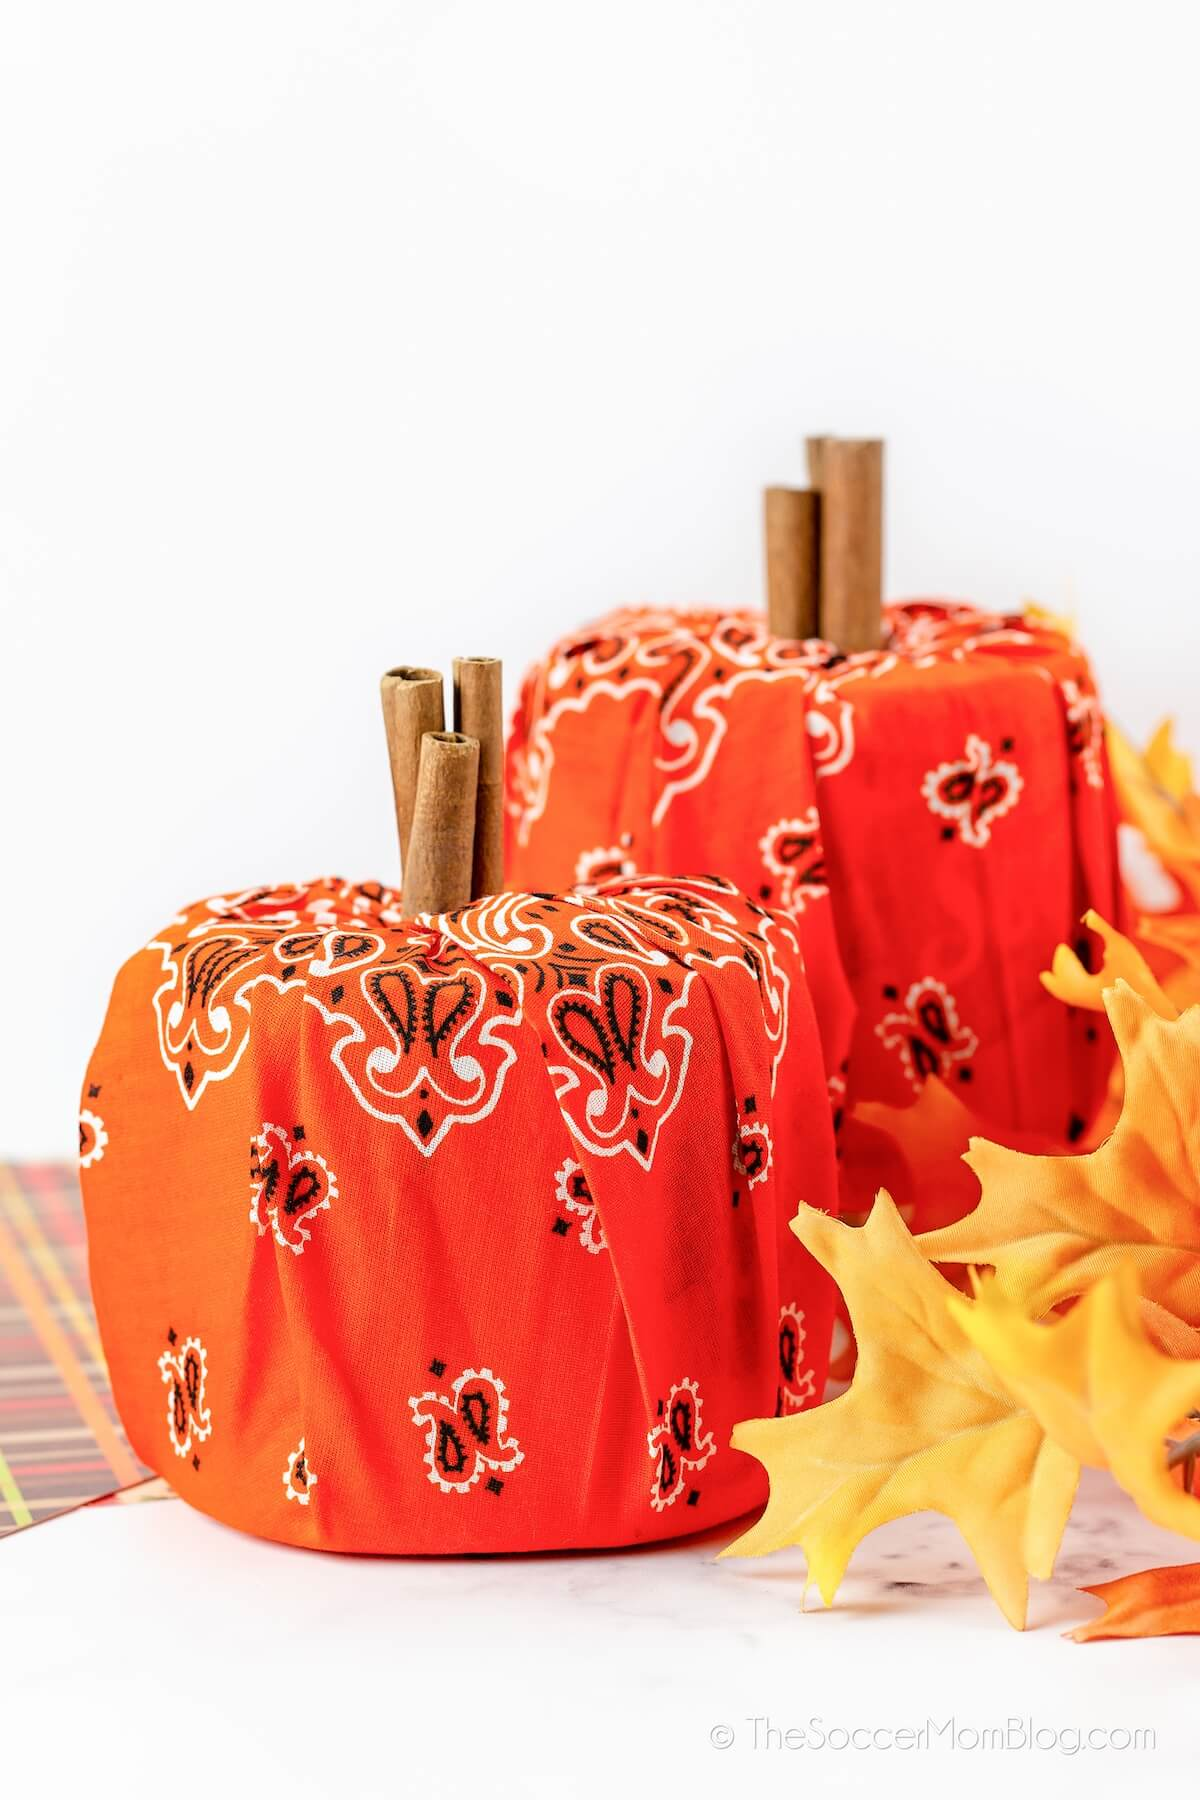 decorative pumpkins made from toilet paper rolls and bandanas